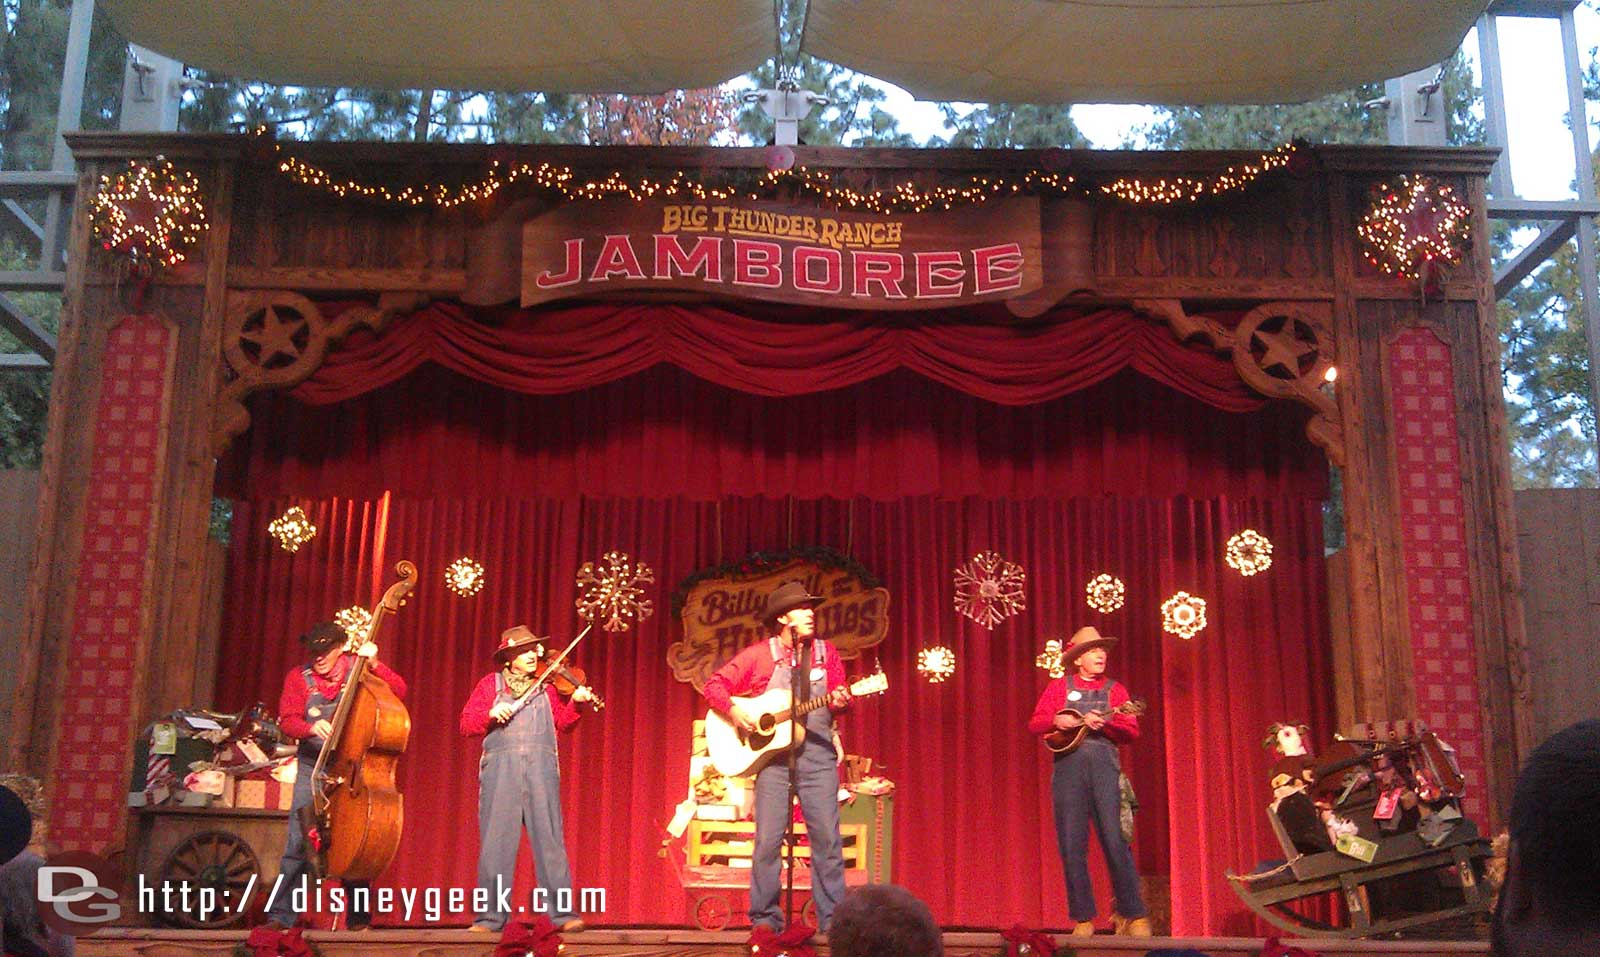 The Holiday Hillbillies at the Jingle Jangle Jamboree